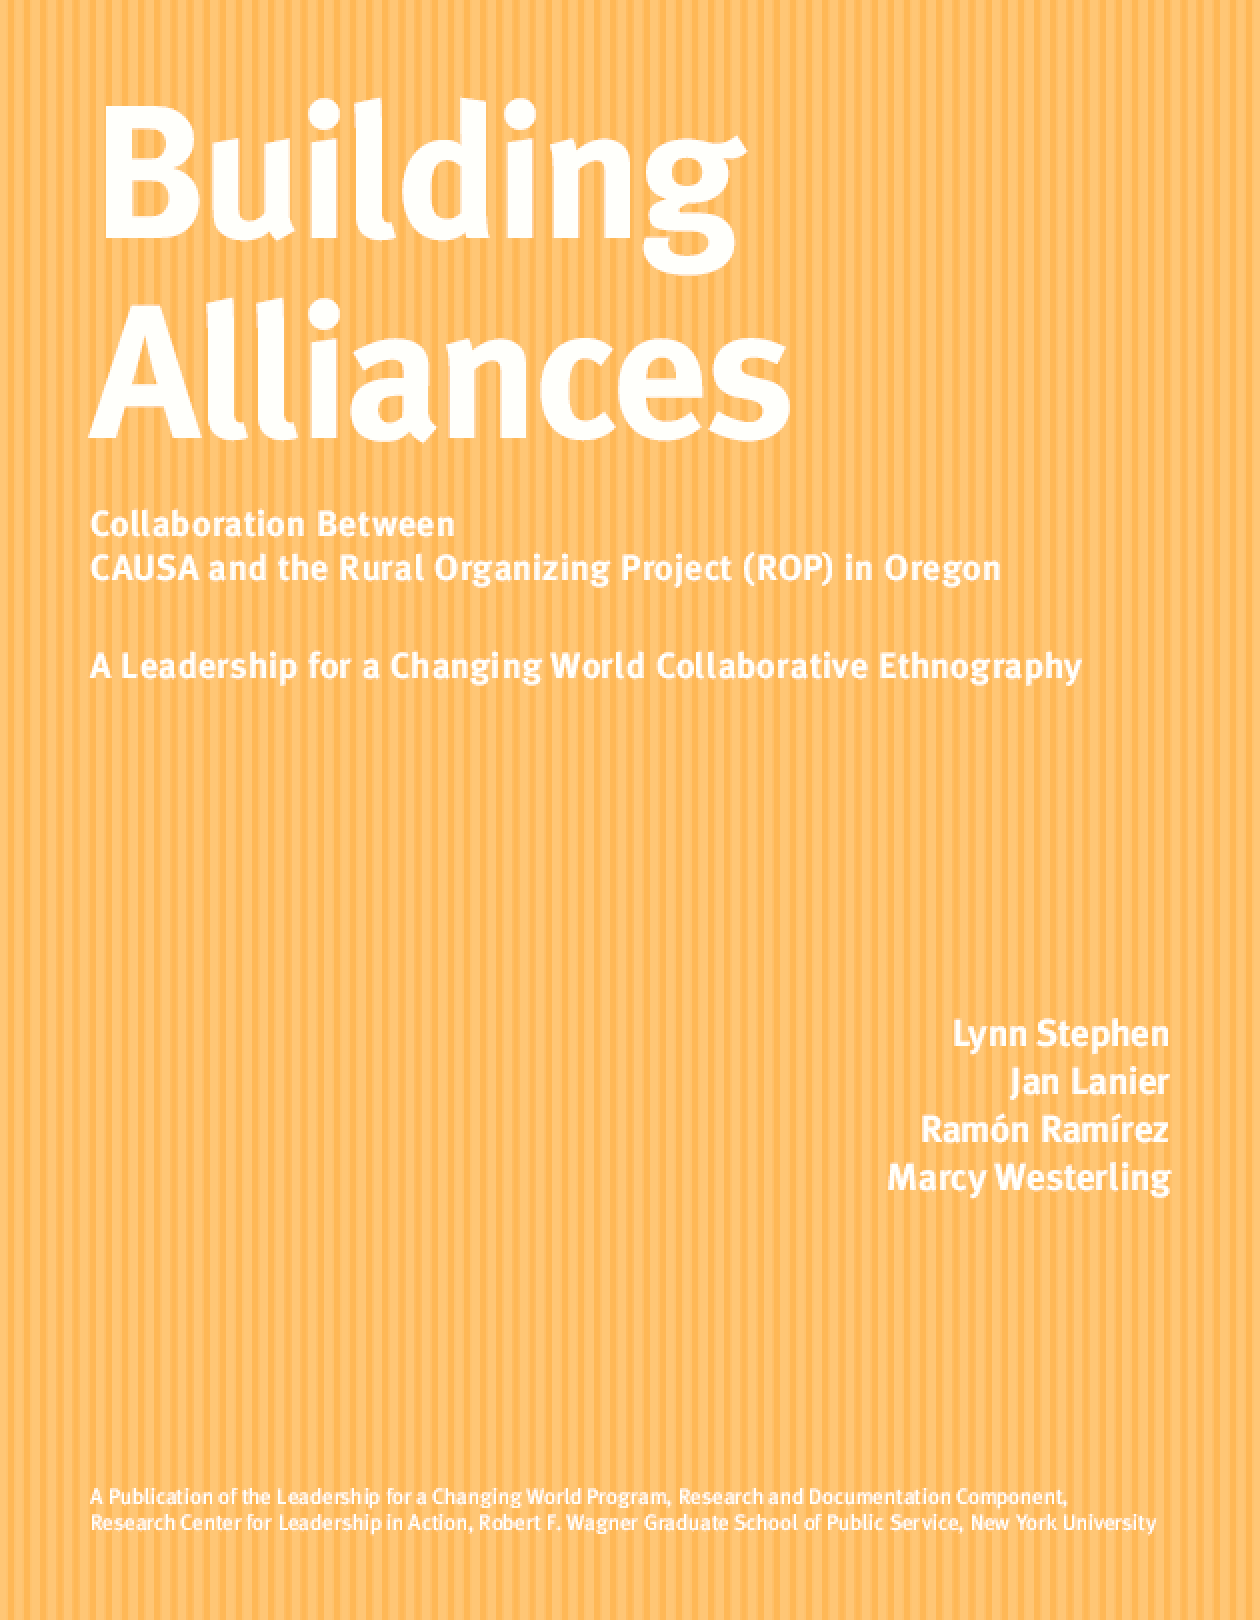 Building Alliances: Collaboration between CAUSA and the Rural Organizing Project in Oregon